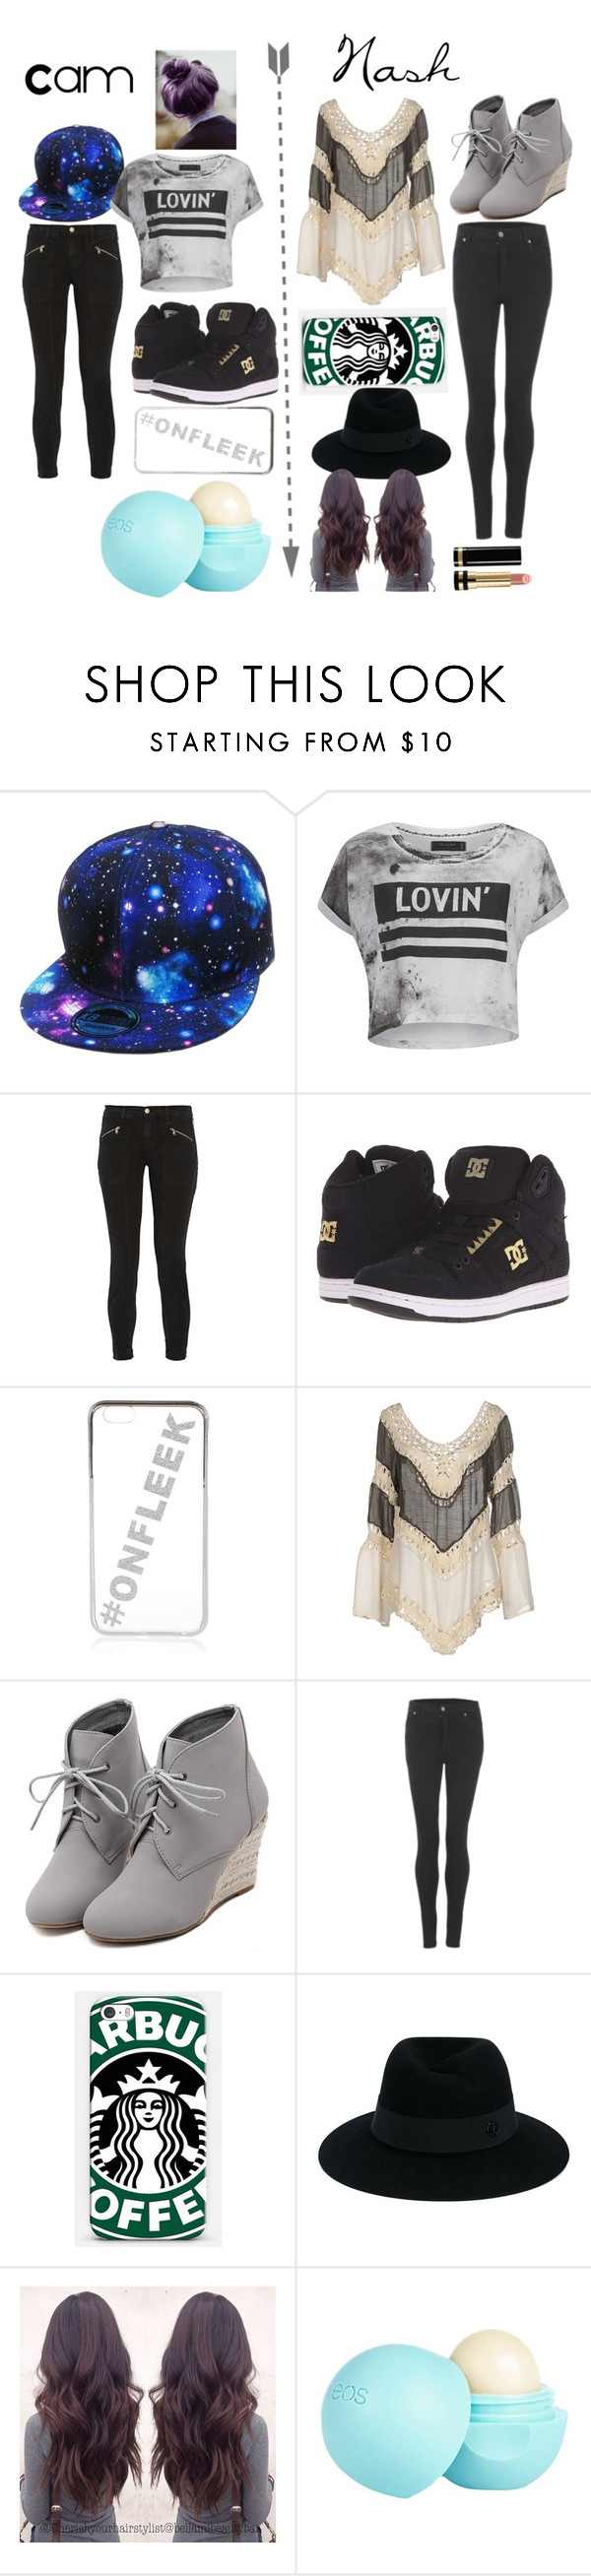 """Cam vs. Nash"" by s8812435 ❤ liked on Polyvore featuring Religion Clothing, J Brand, DC Shoes, River Island, Care Of You, WithChic, Cheap Monday, Samsung, Maison Michel and Gucci"